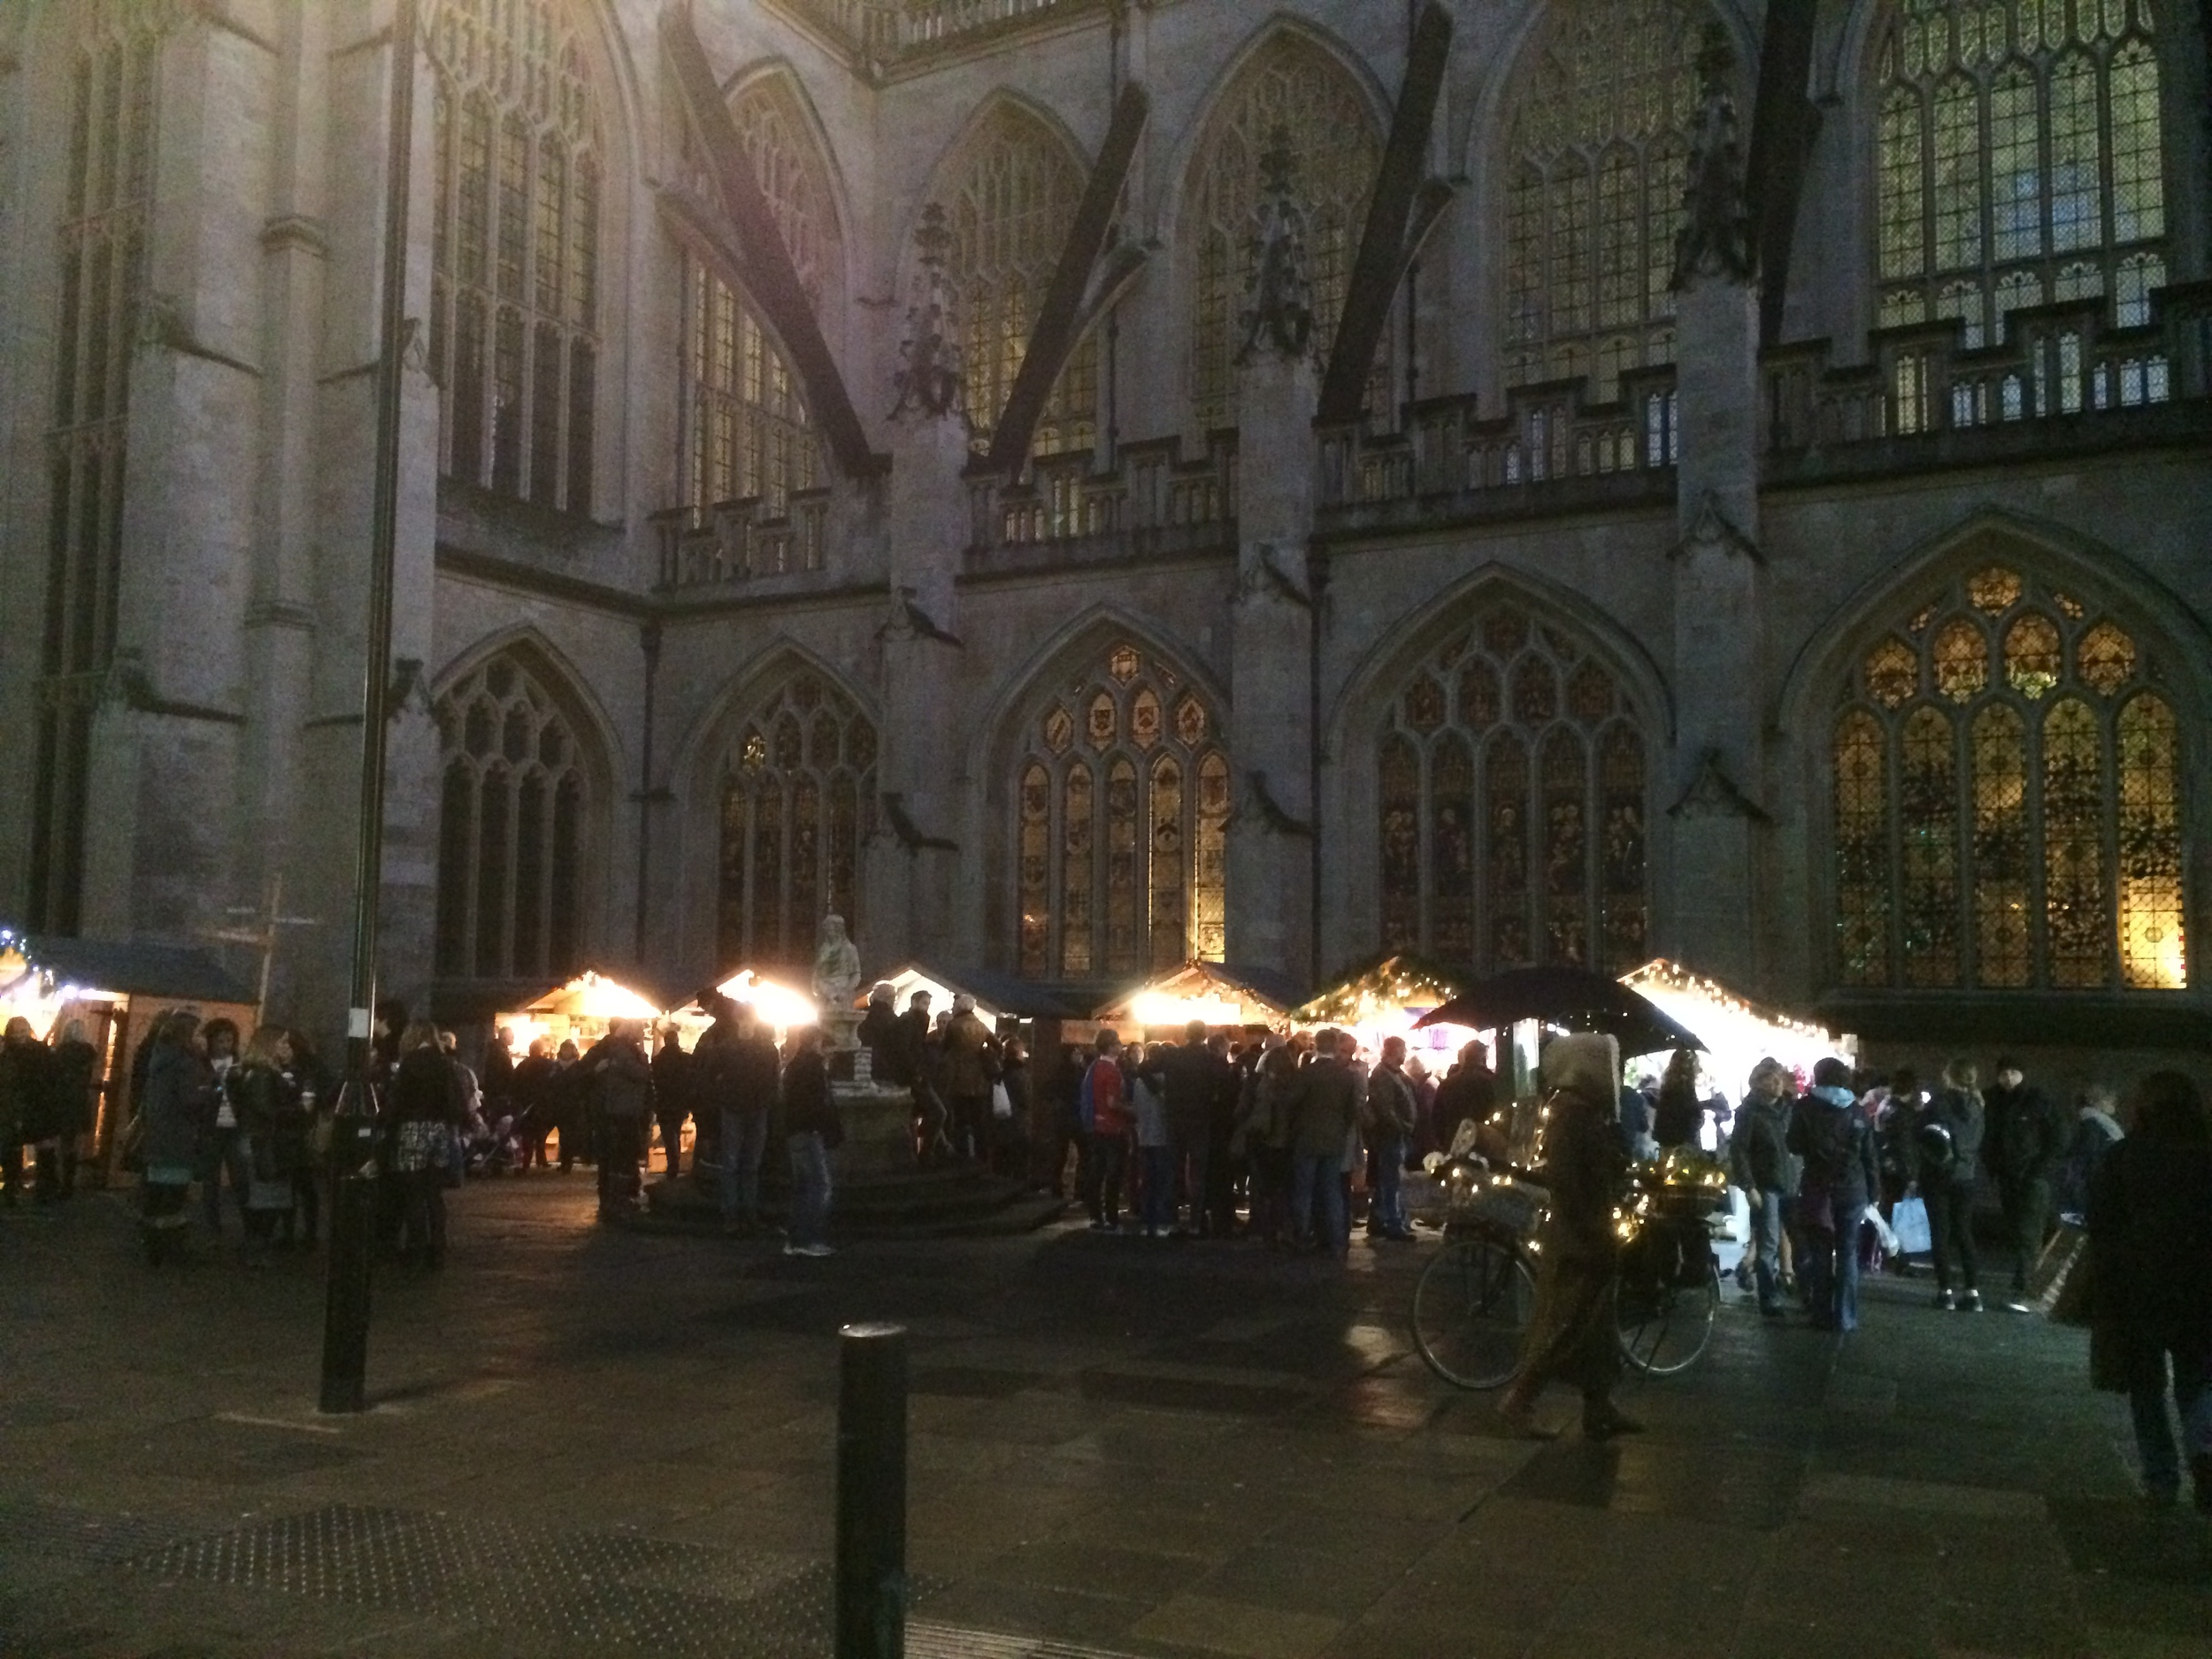 A rare shot of the Christmas market attwilight in theshadow of the abbey. It was so pretty seeing all the stalls lit up.